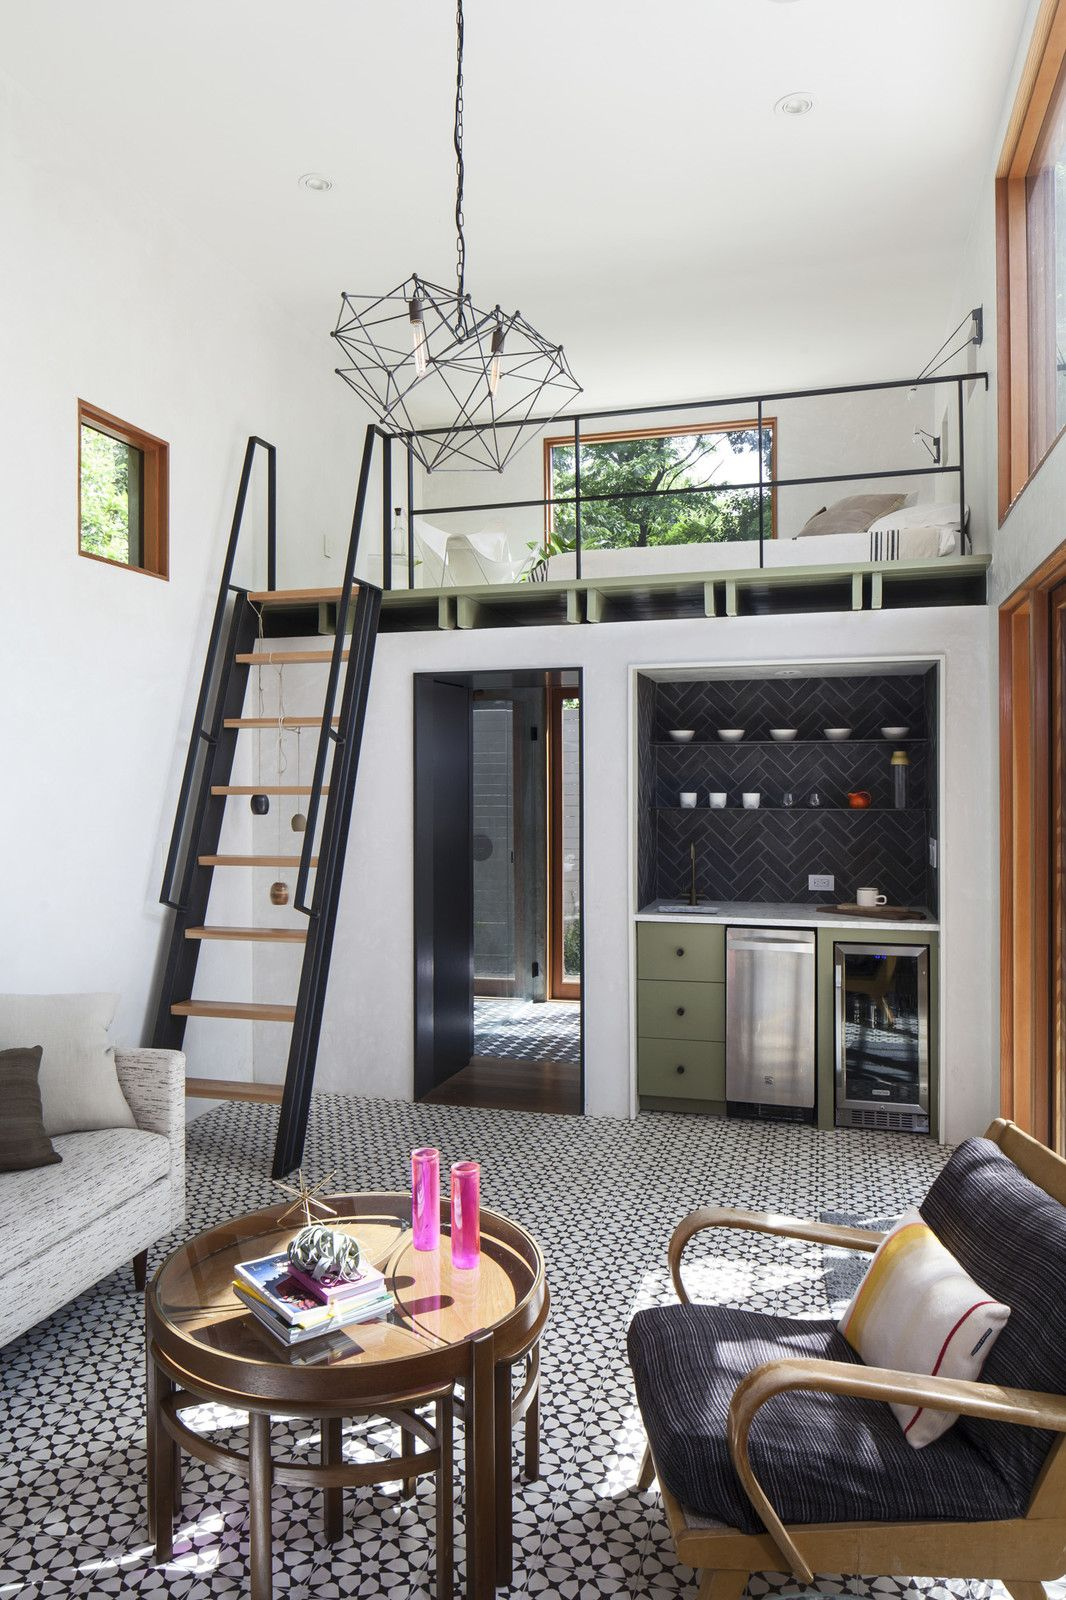 The New Casita Features A Double Height Living Room With Custom Cement Tiles  And Plaster Walls, As Well As A Kitchenette Nook, And Custom Steel U0026 Wood  Ship ...